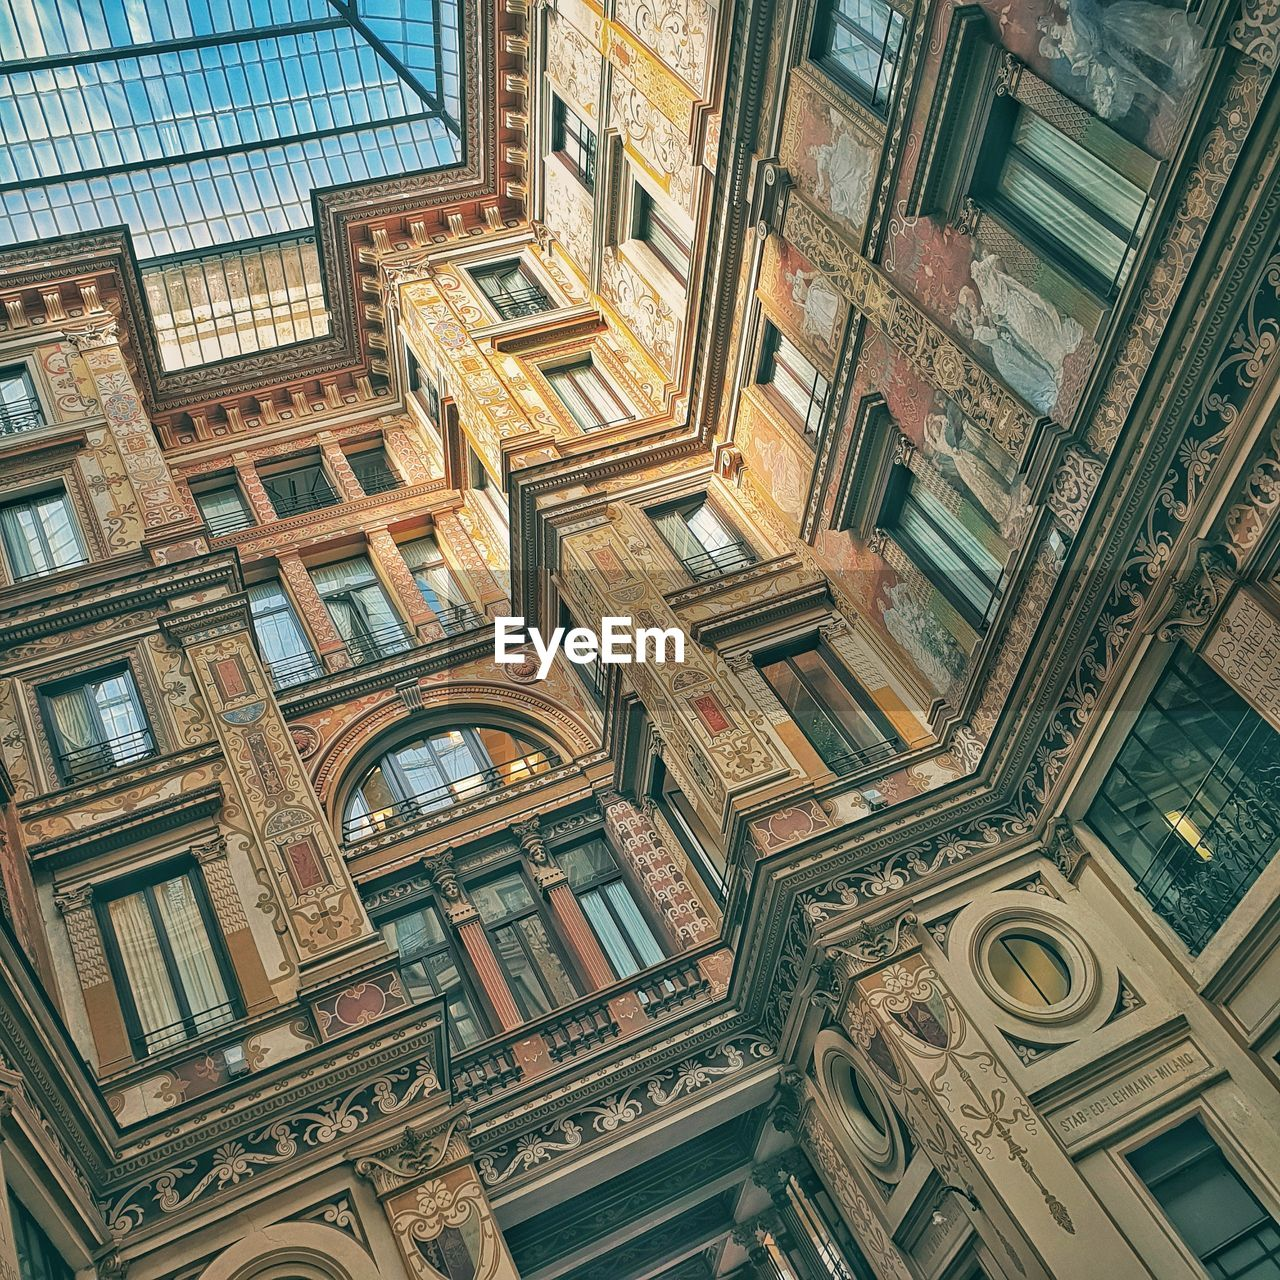 architecture, built structure, building exterior, building, window, no people, low angle view, day, pattern, full frame, design, history, the past, travel destinations, backgrounds, city, old, outdoors, ceiling, ornate, directly below